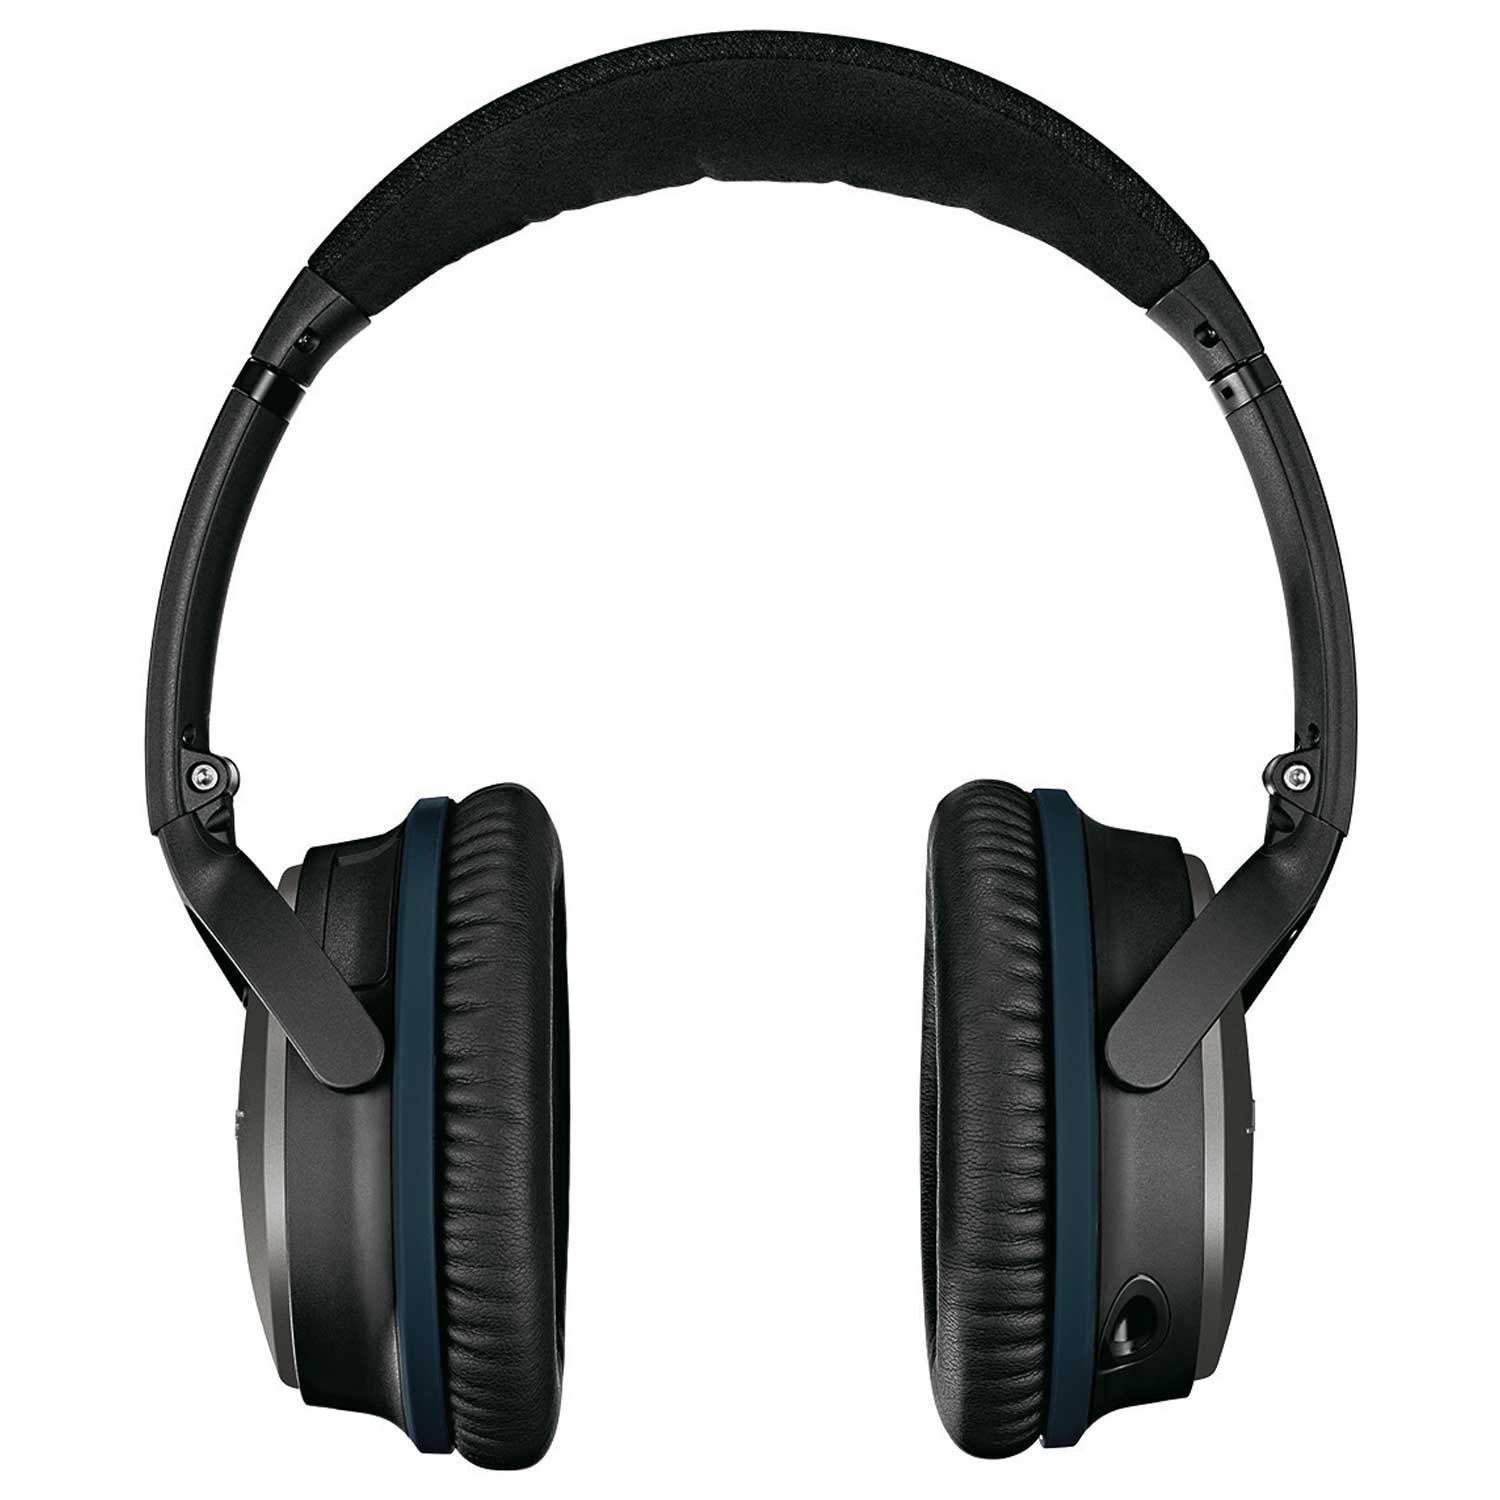 Bose Quietcomfort 25 Acoustic Around Ear Noise Headphone Wiring Colors Free Engine Image For User Manual Electronics